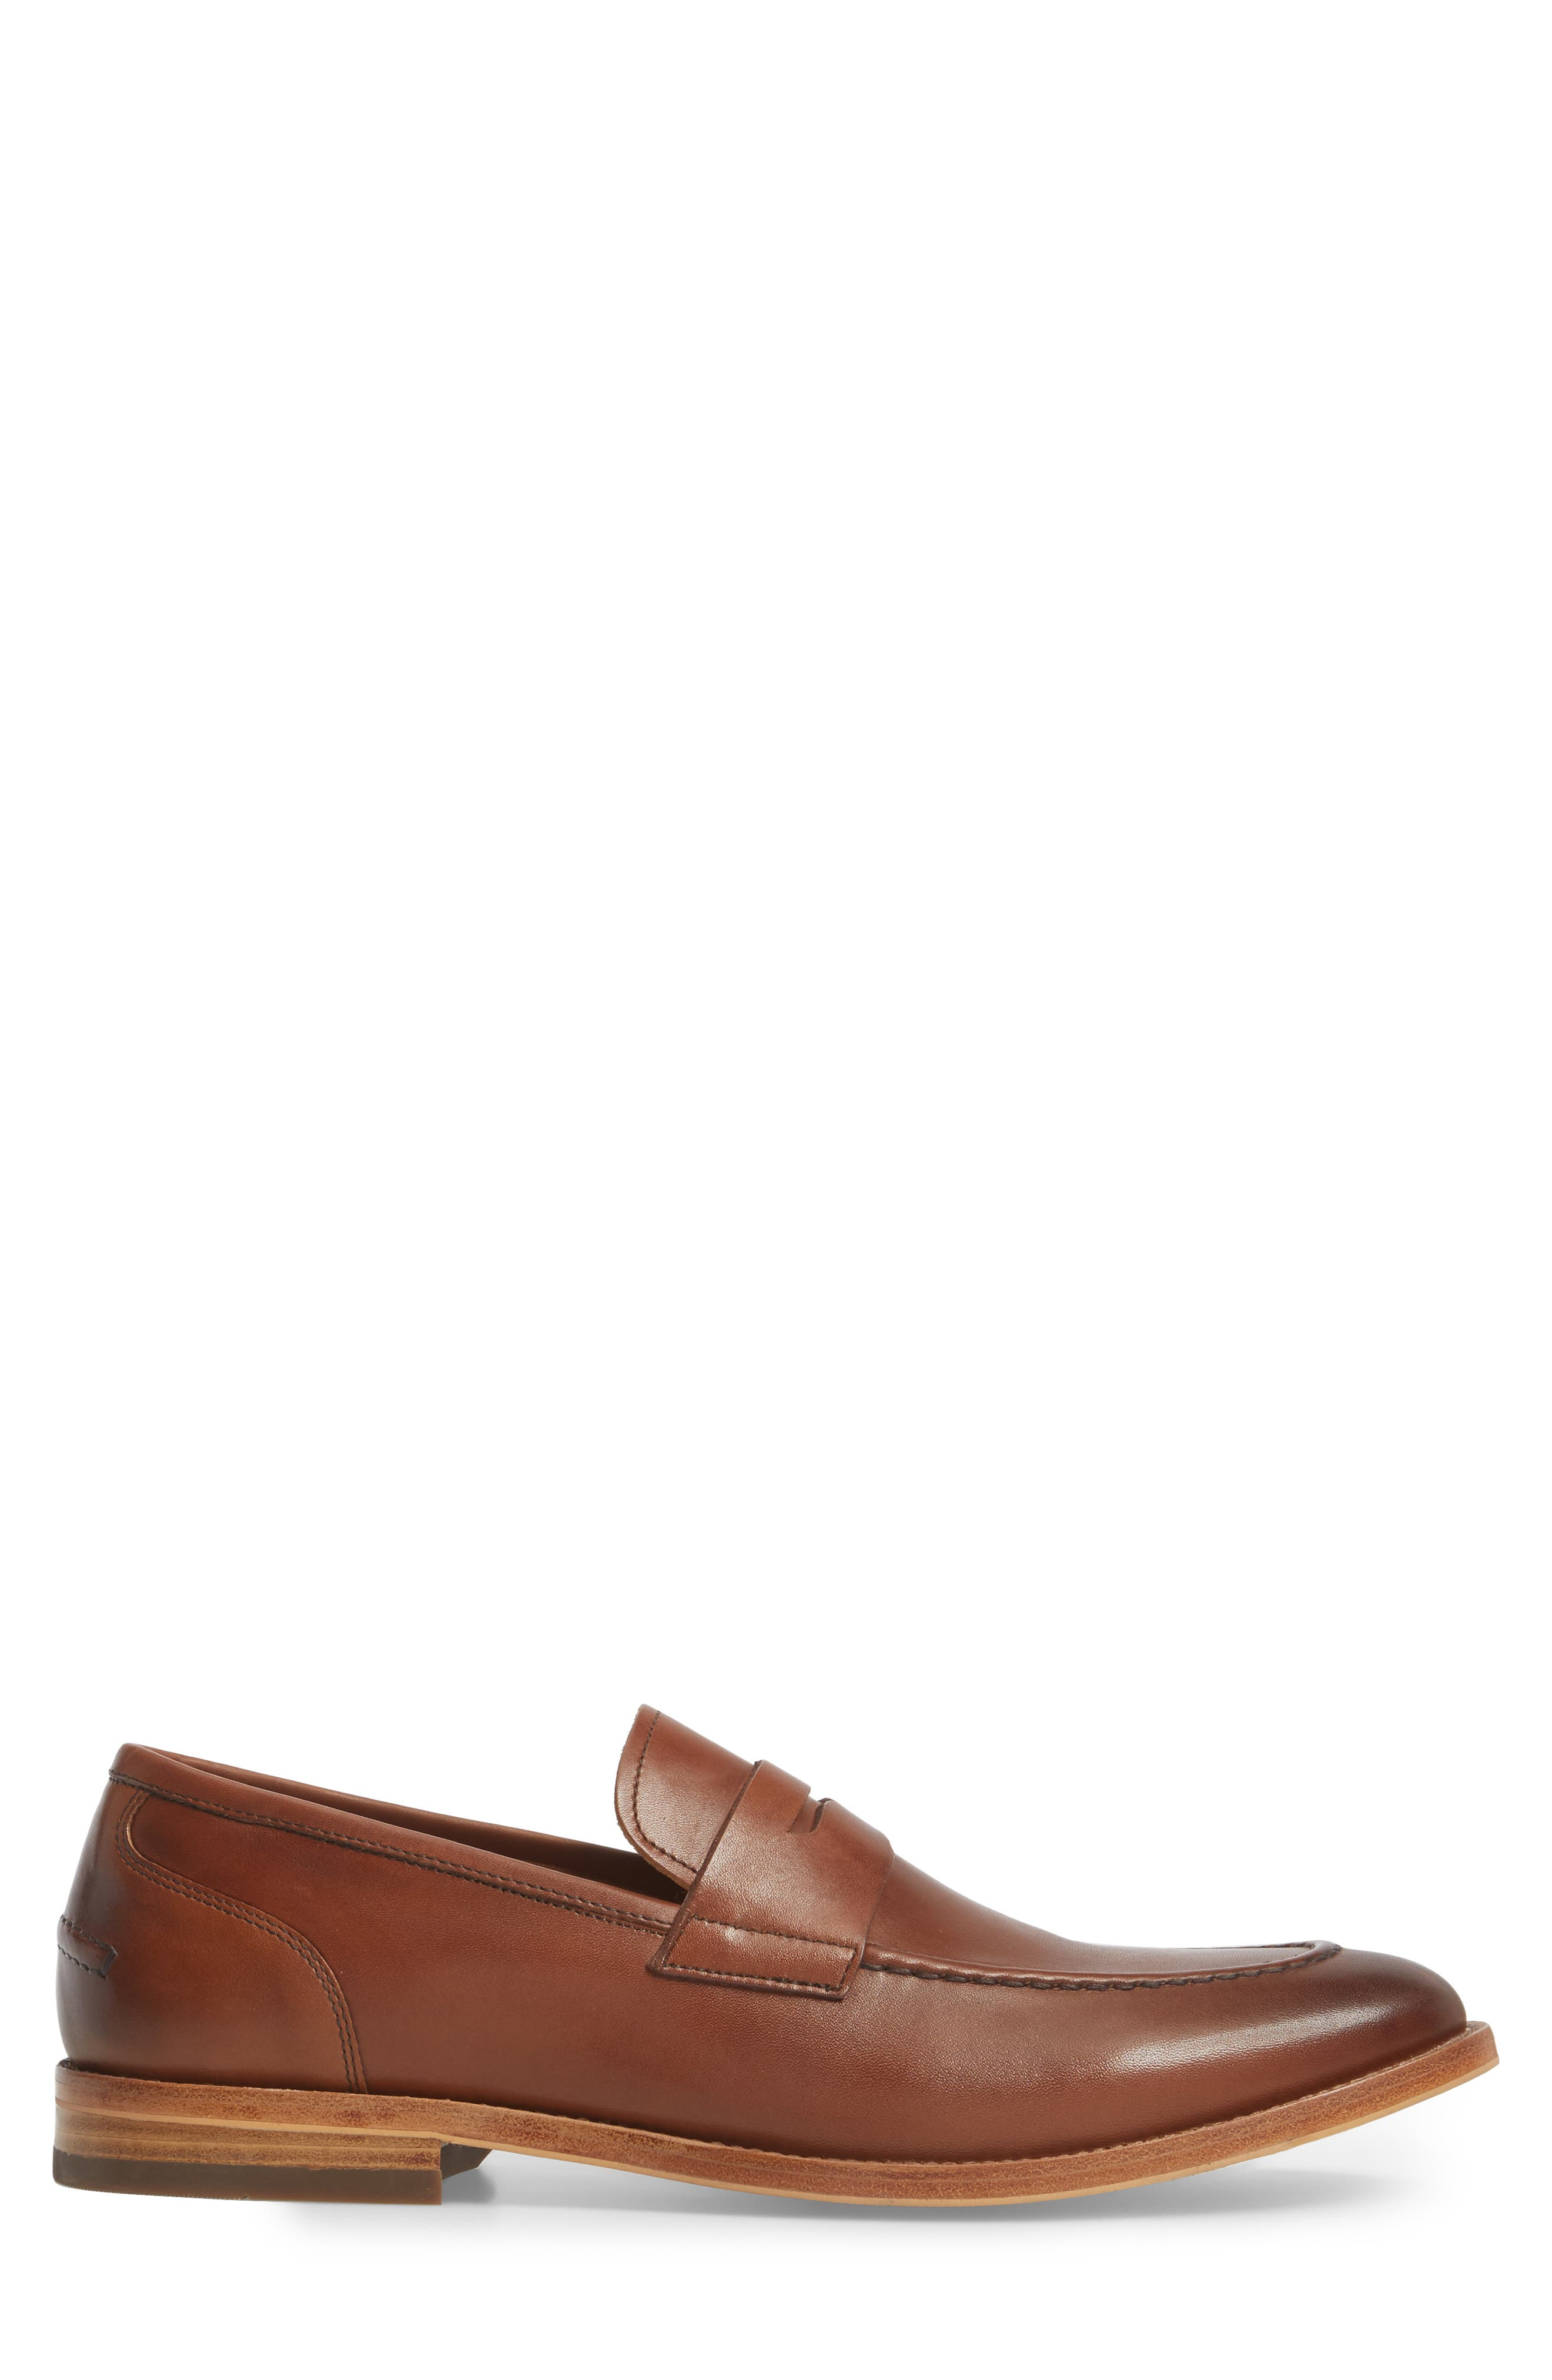 Lucas Loafer,                             Alternate thumbnail 3, color,                             Luggage Leather